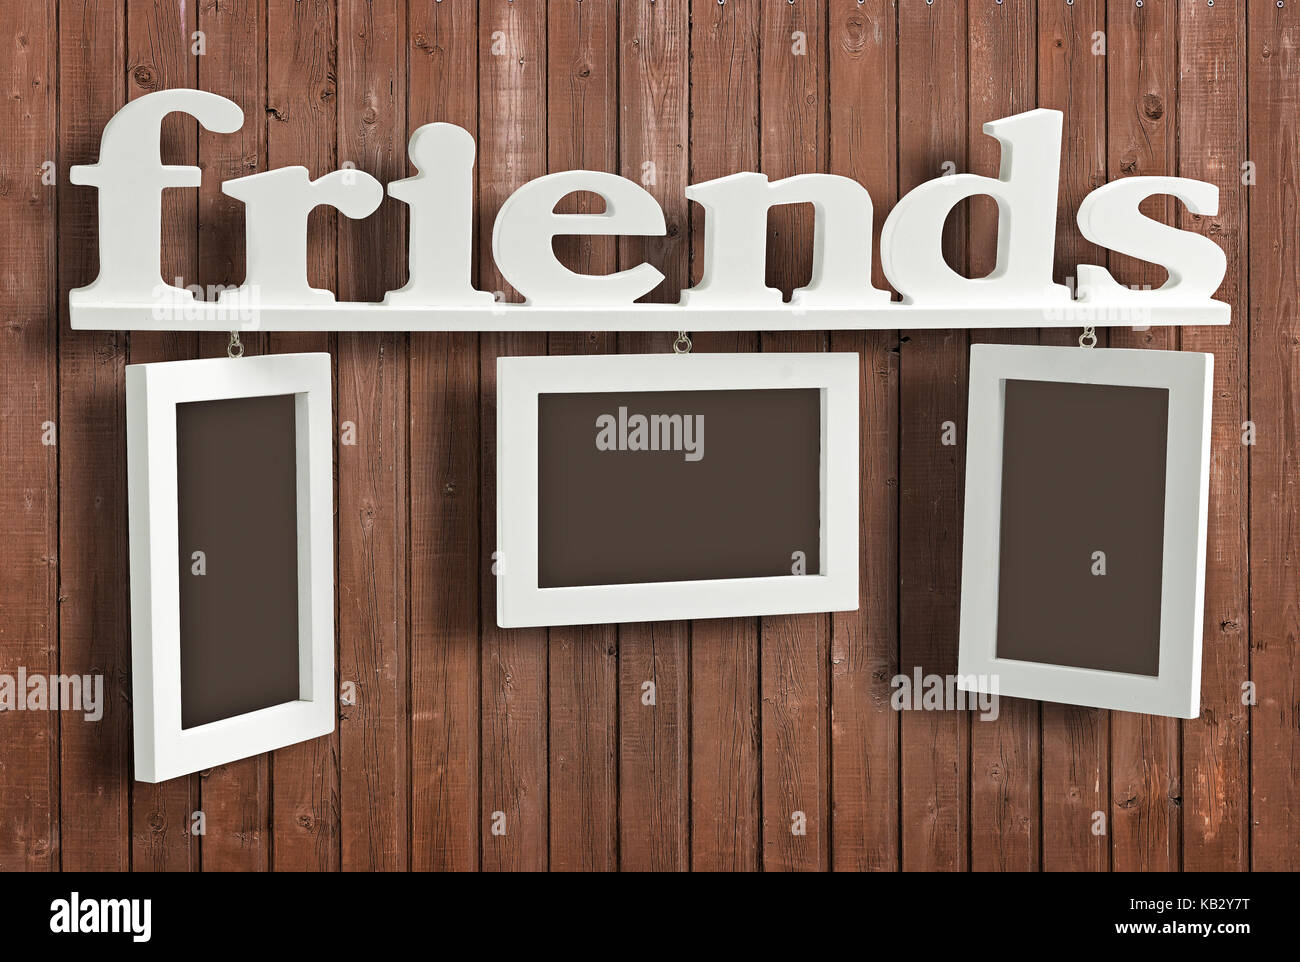 White wooden photo frame with text friends on wooden wall hanging white wooden photo frame with text friends on wooden wall hanging photo frame consists of three frames and the word friends jeuxipadfo Gallery